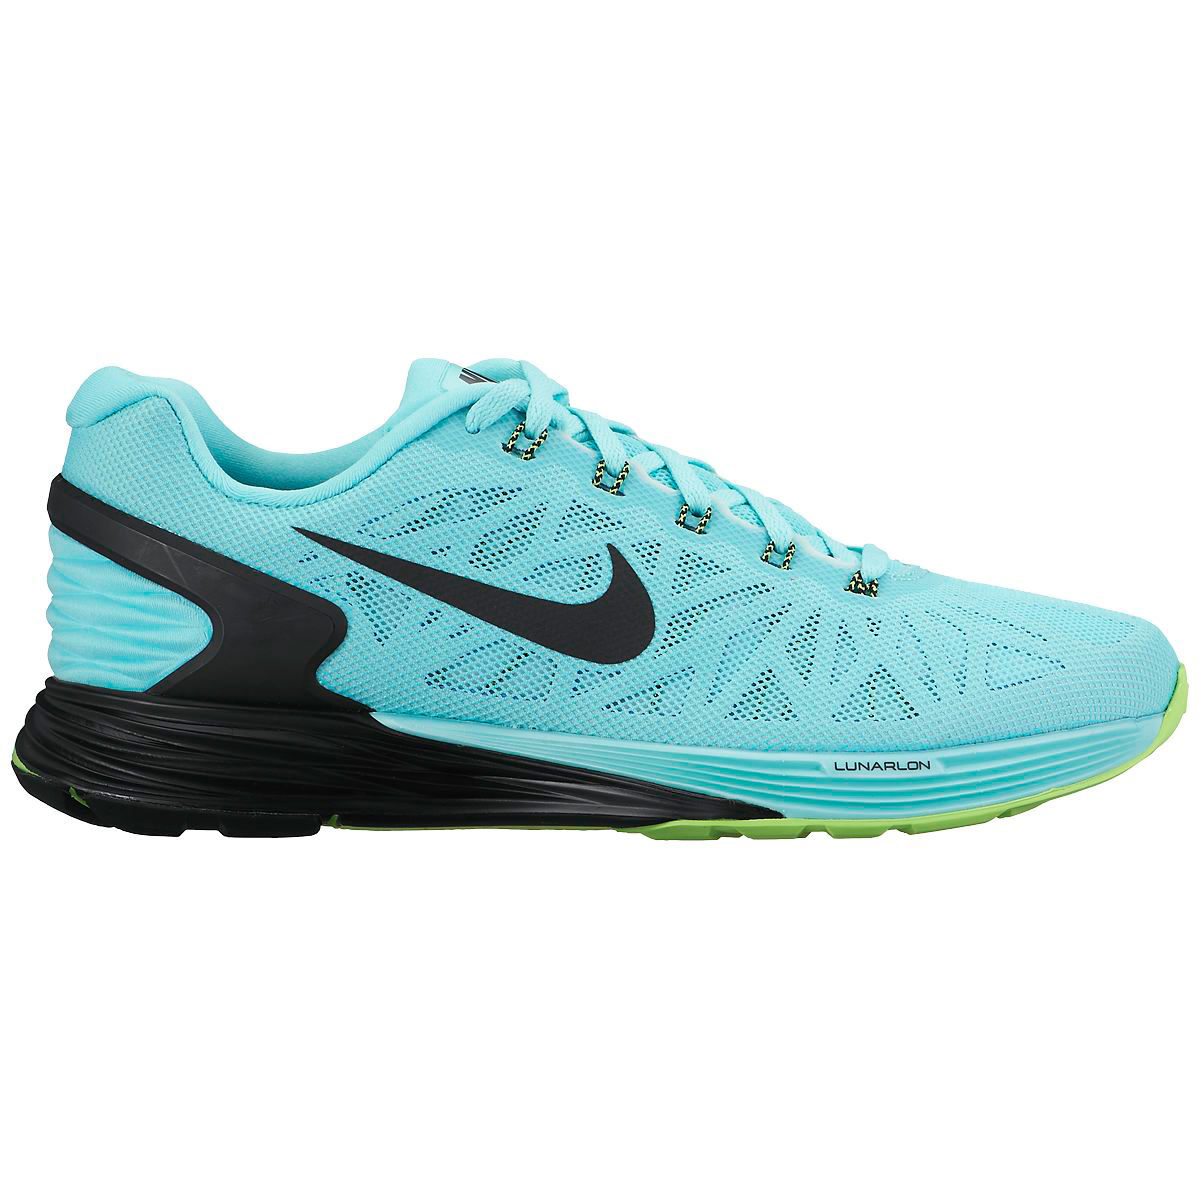 Nike Lunarglide, Nike, Shoes Shipped Free at Zappos